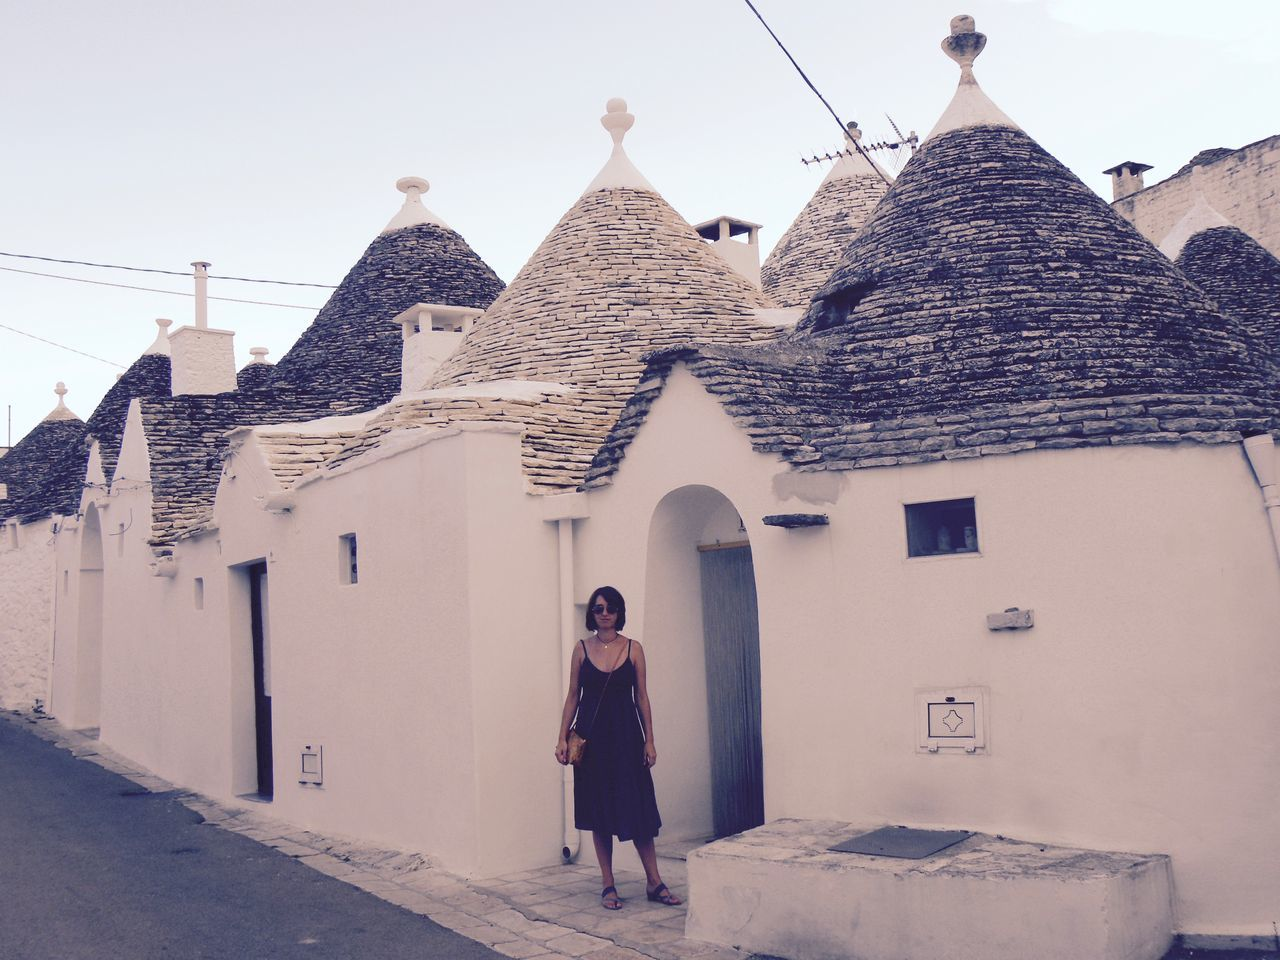 Alberobello Alberobello - Puglia Alberobello City Alberobellocity Alberobelloexperience Alberobellophotocontest Architecture Building Exterior Built Structure Day Front View Full Length House Lifestyles Looking At Camera One Person Outdoors People Portrait Real People Standing Young Adult Young Women